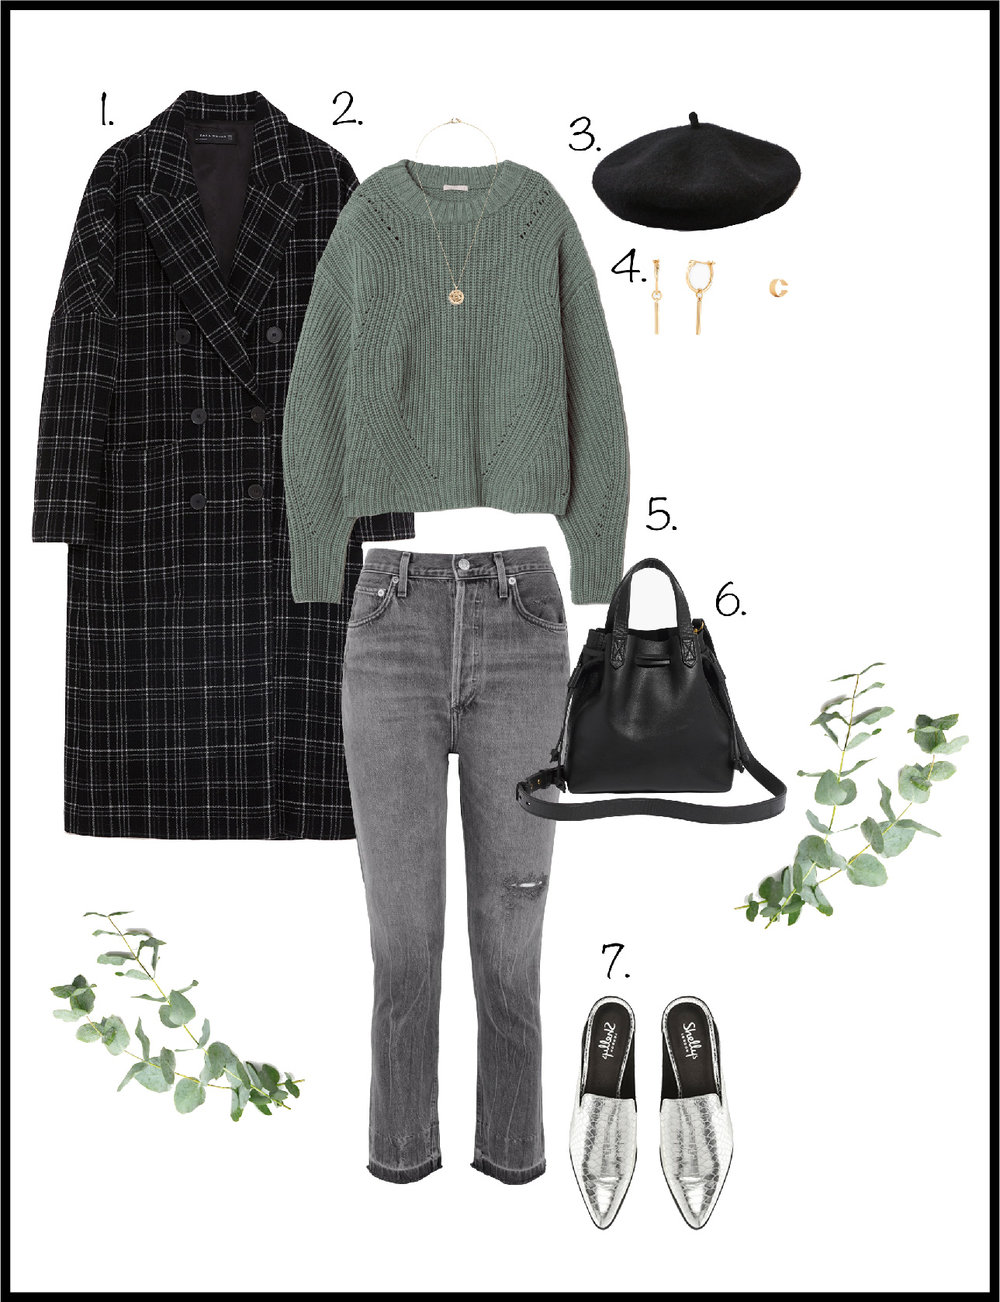 1. Coat:  Zara , 2. Sweater:  H&M , 3. Beret:  American Eagle , 4.  Earrings  &  Cuff : Mejuri, 5. Jeans:  Agolde , 6. Bag:  Madewell , 7. Shoes:  Shellys London